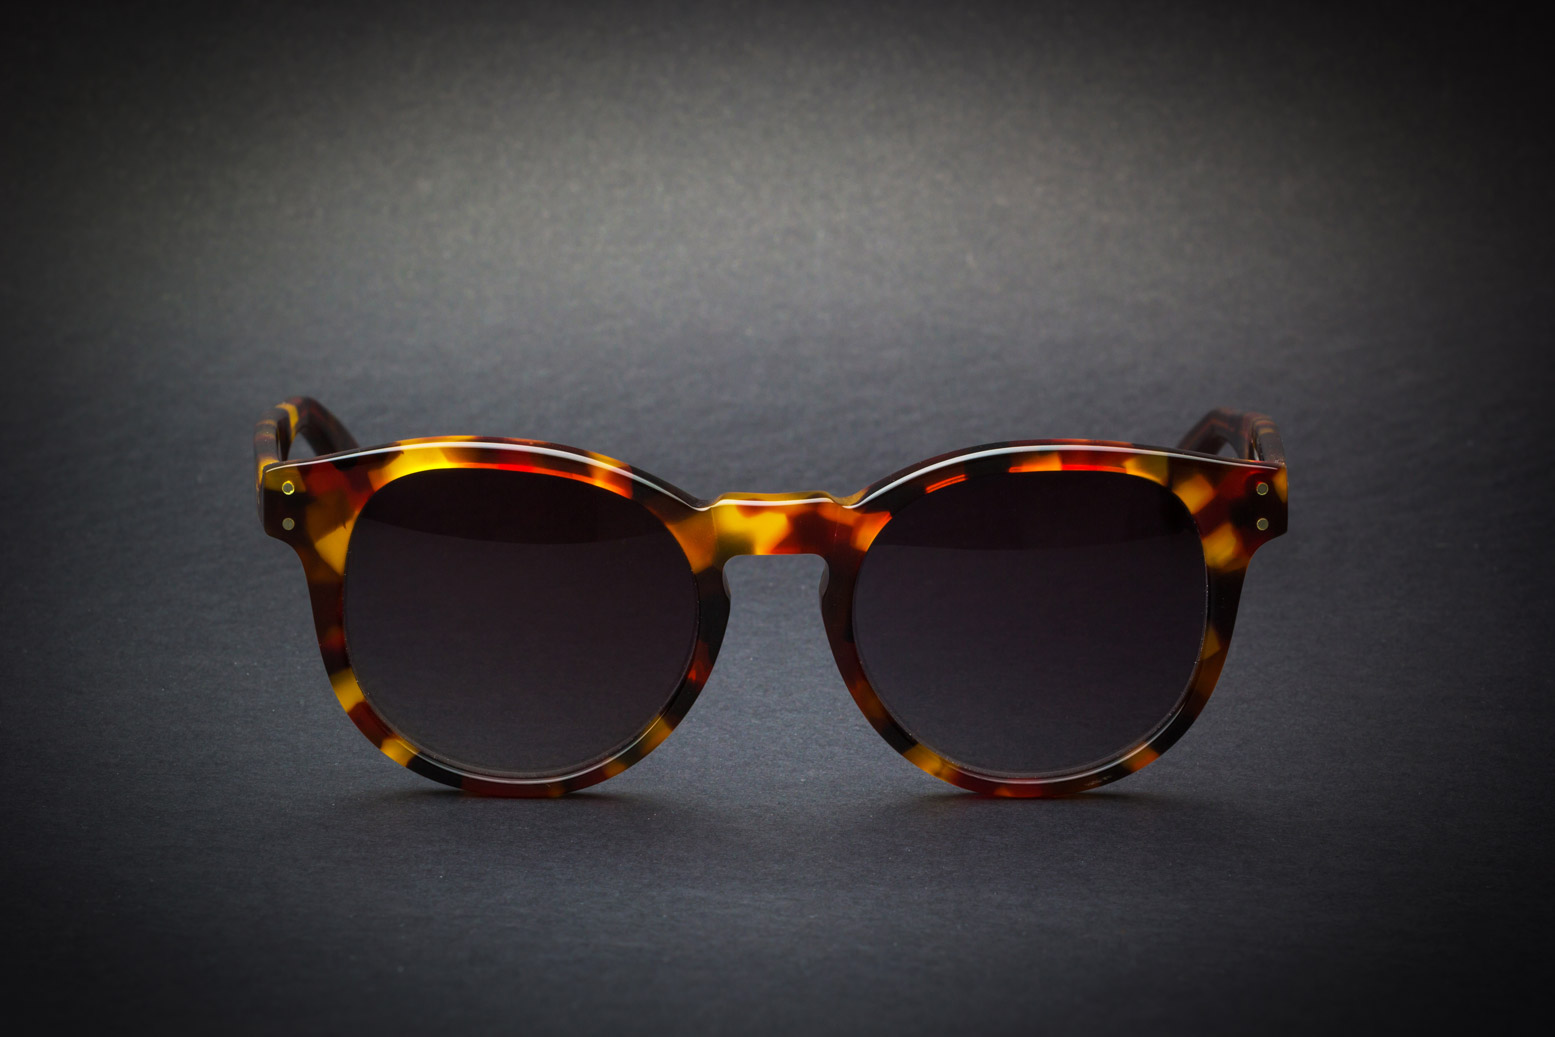 Wilde_Sunglasses_bigsur_Handmade_BArcelona_best_Sunglasses_2018_Brand_MAdrid_9.jpg